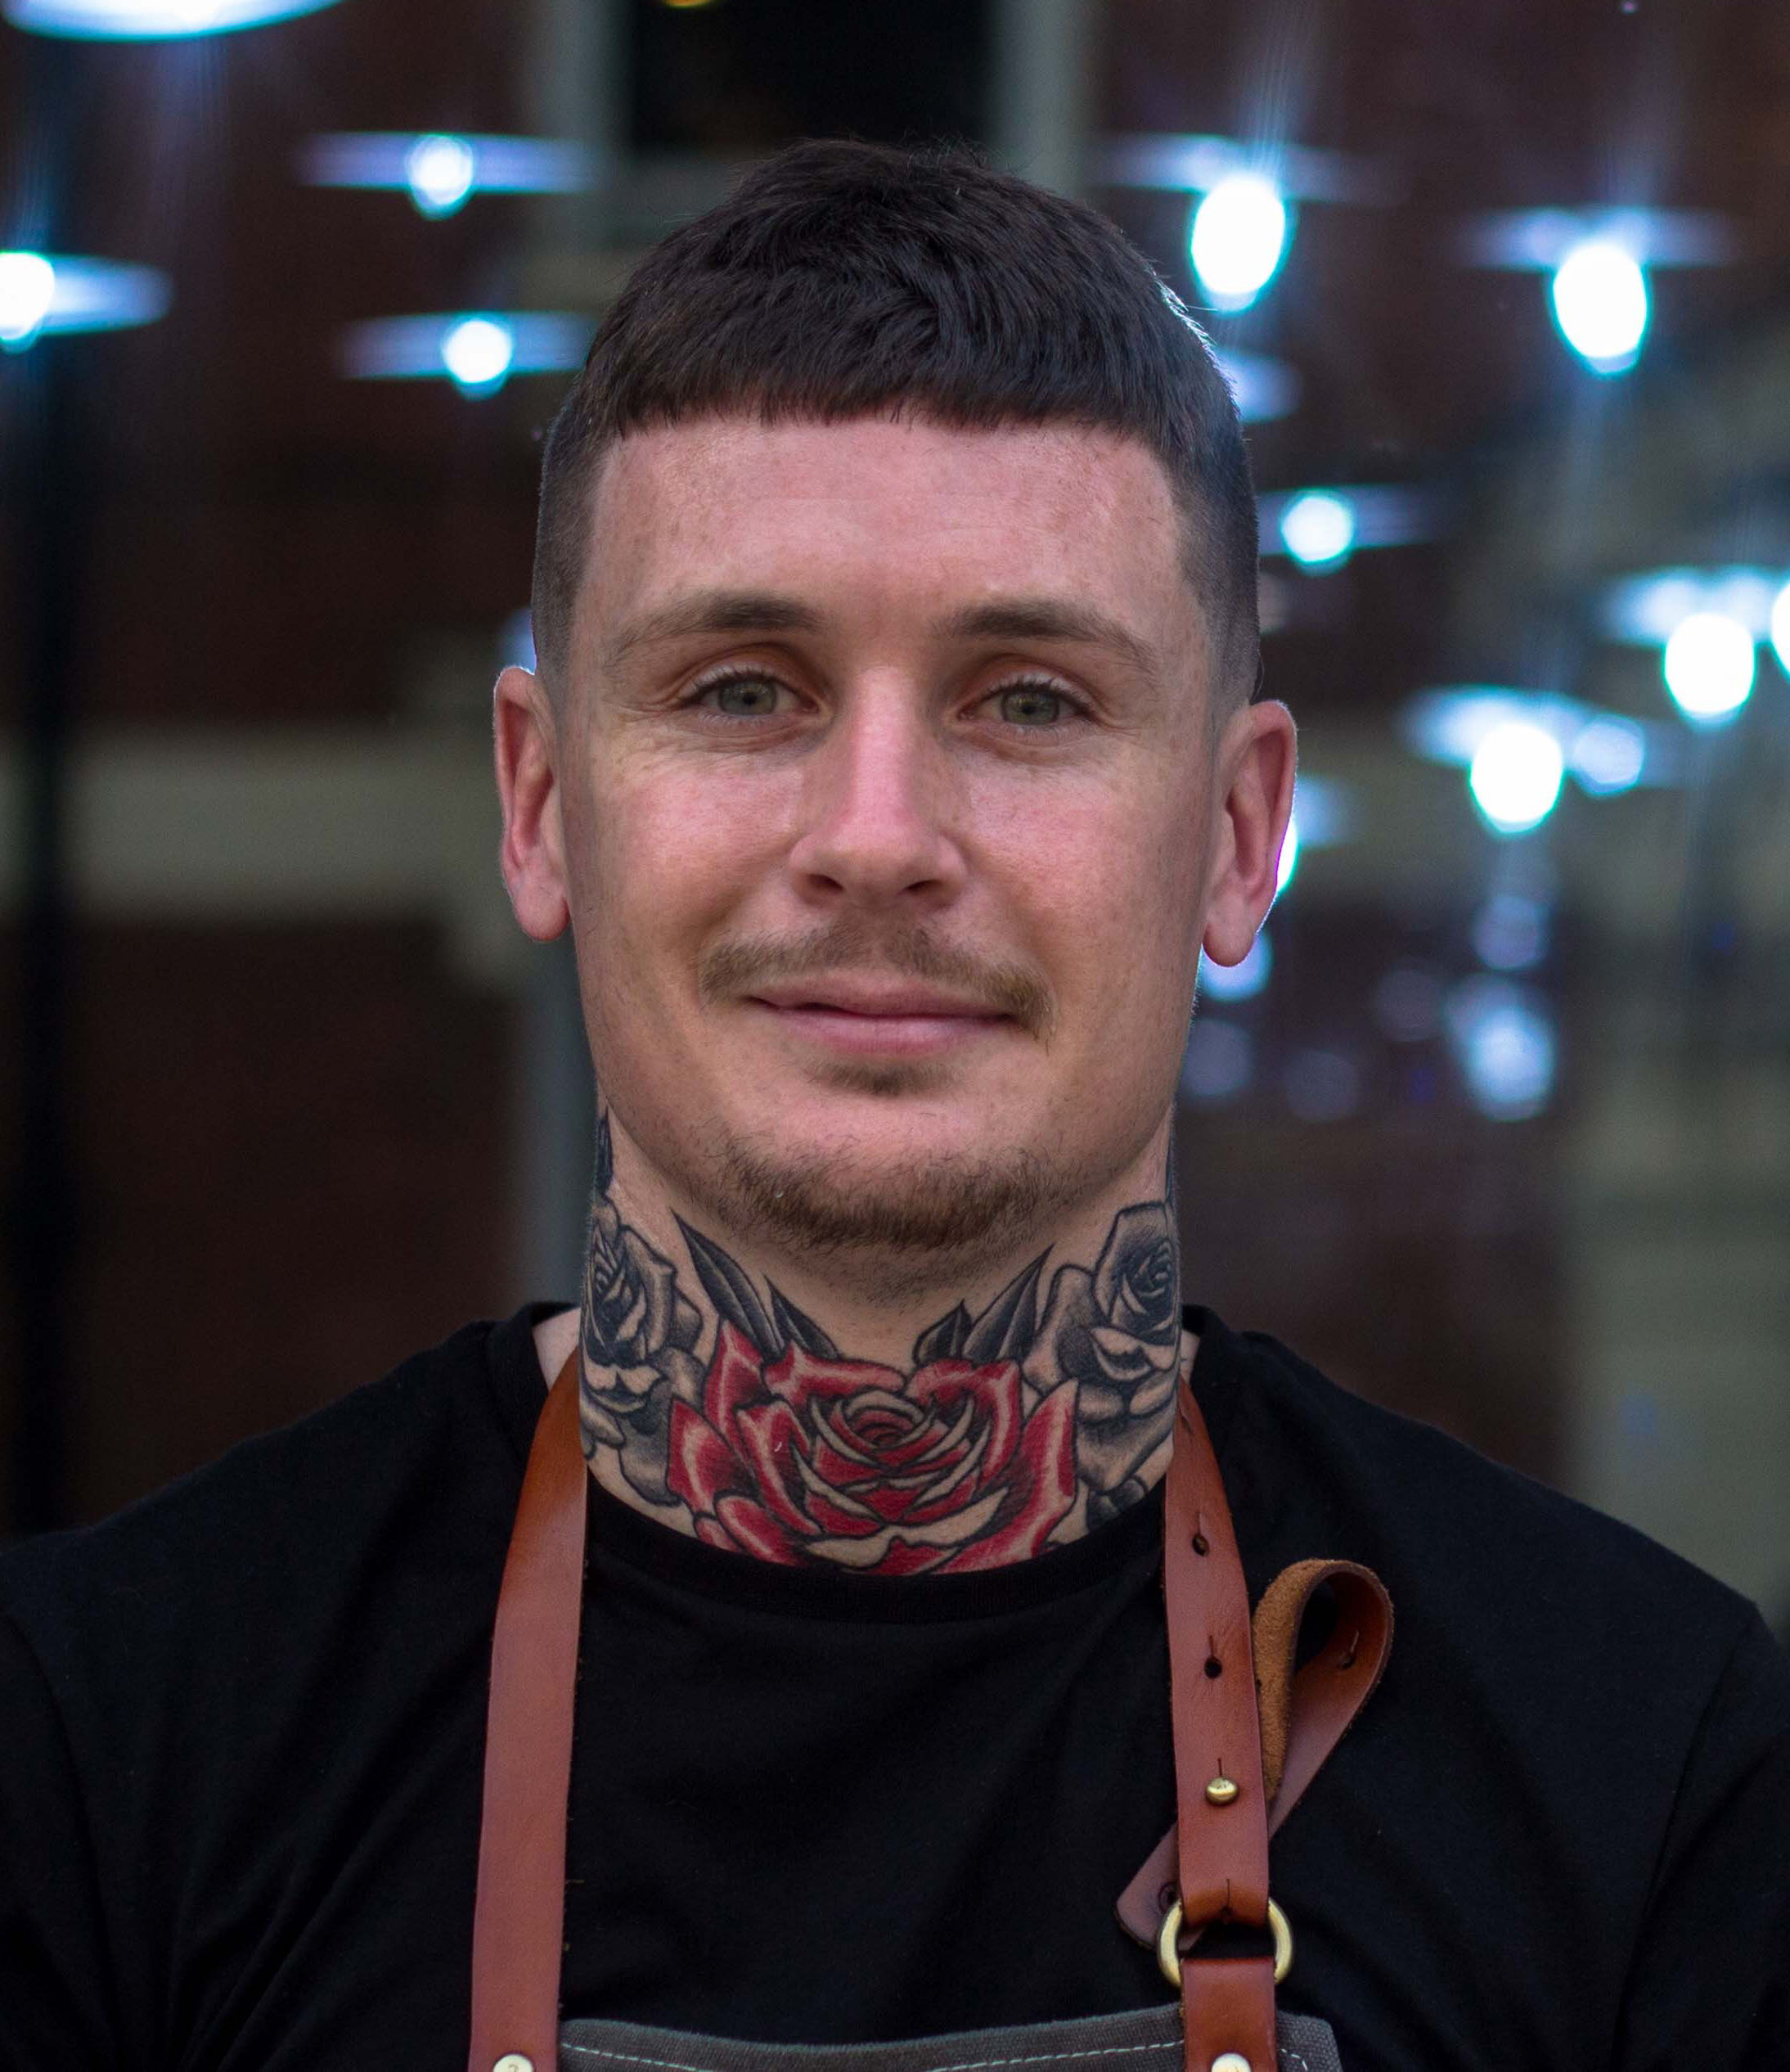 https://www.portersbarbers.co.uk/wp-content/uploads/danny-headshot.jpg